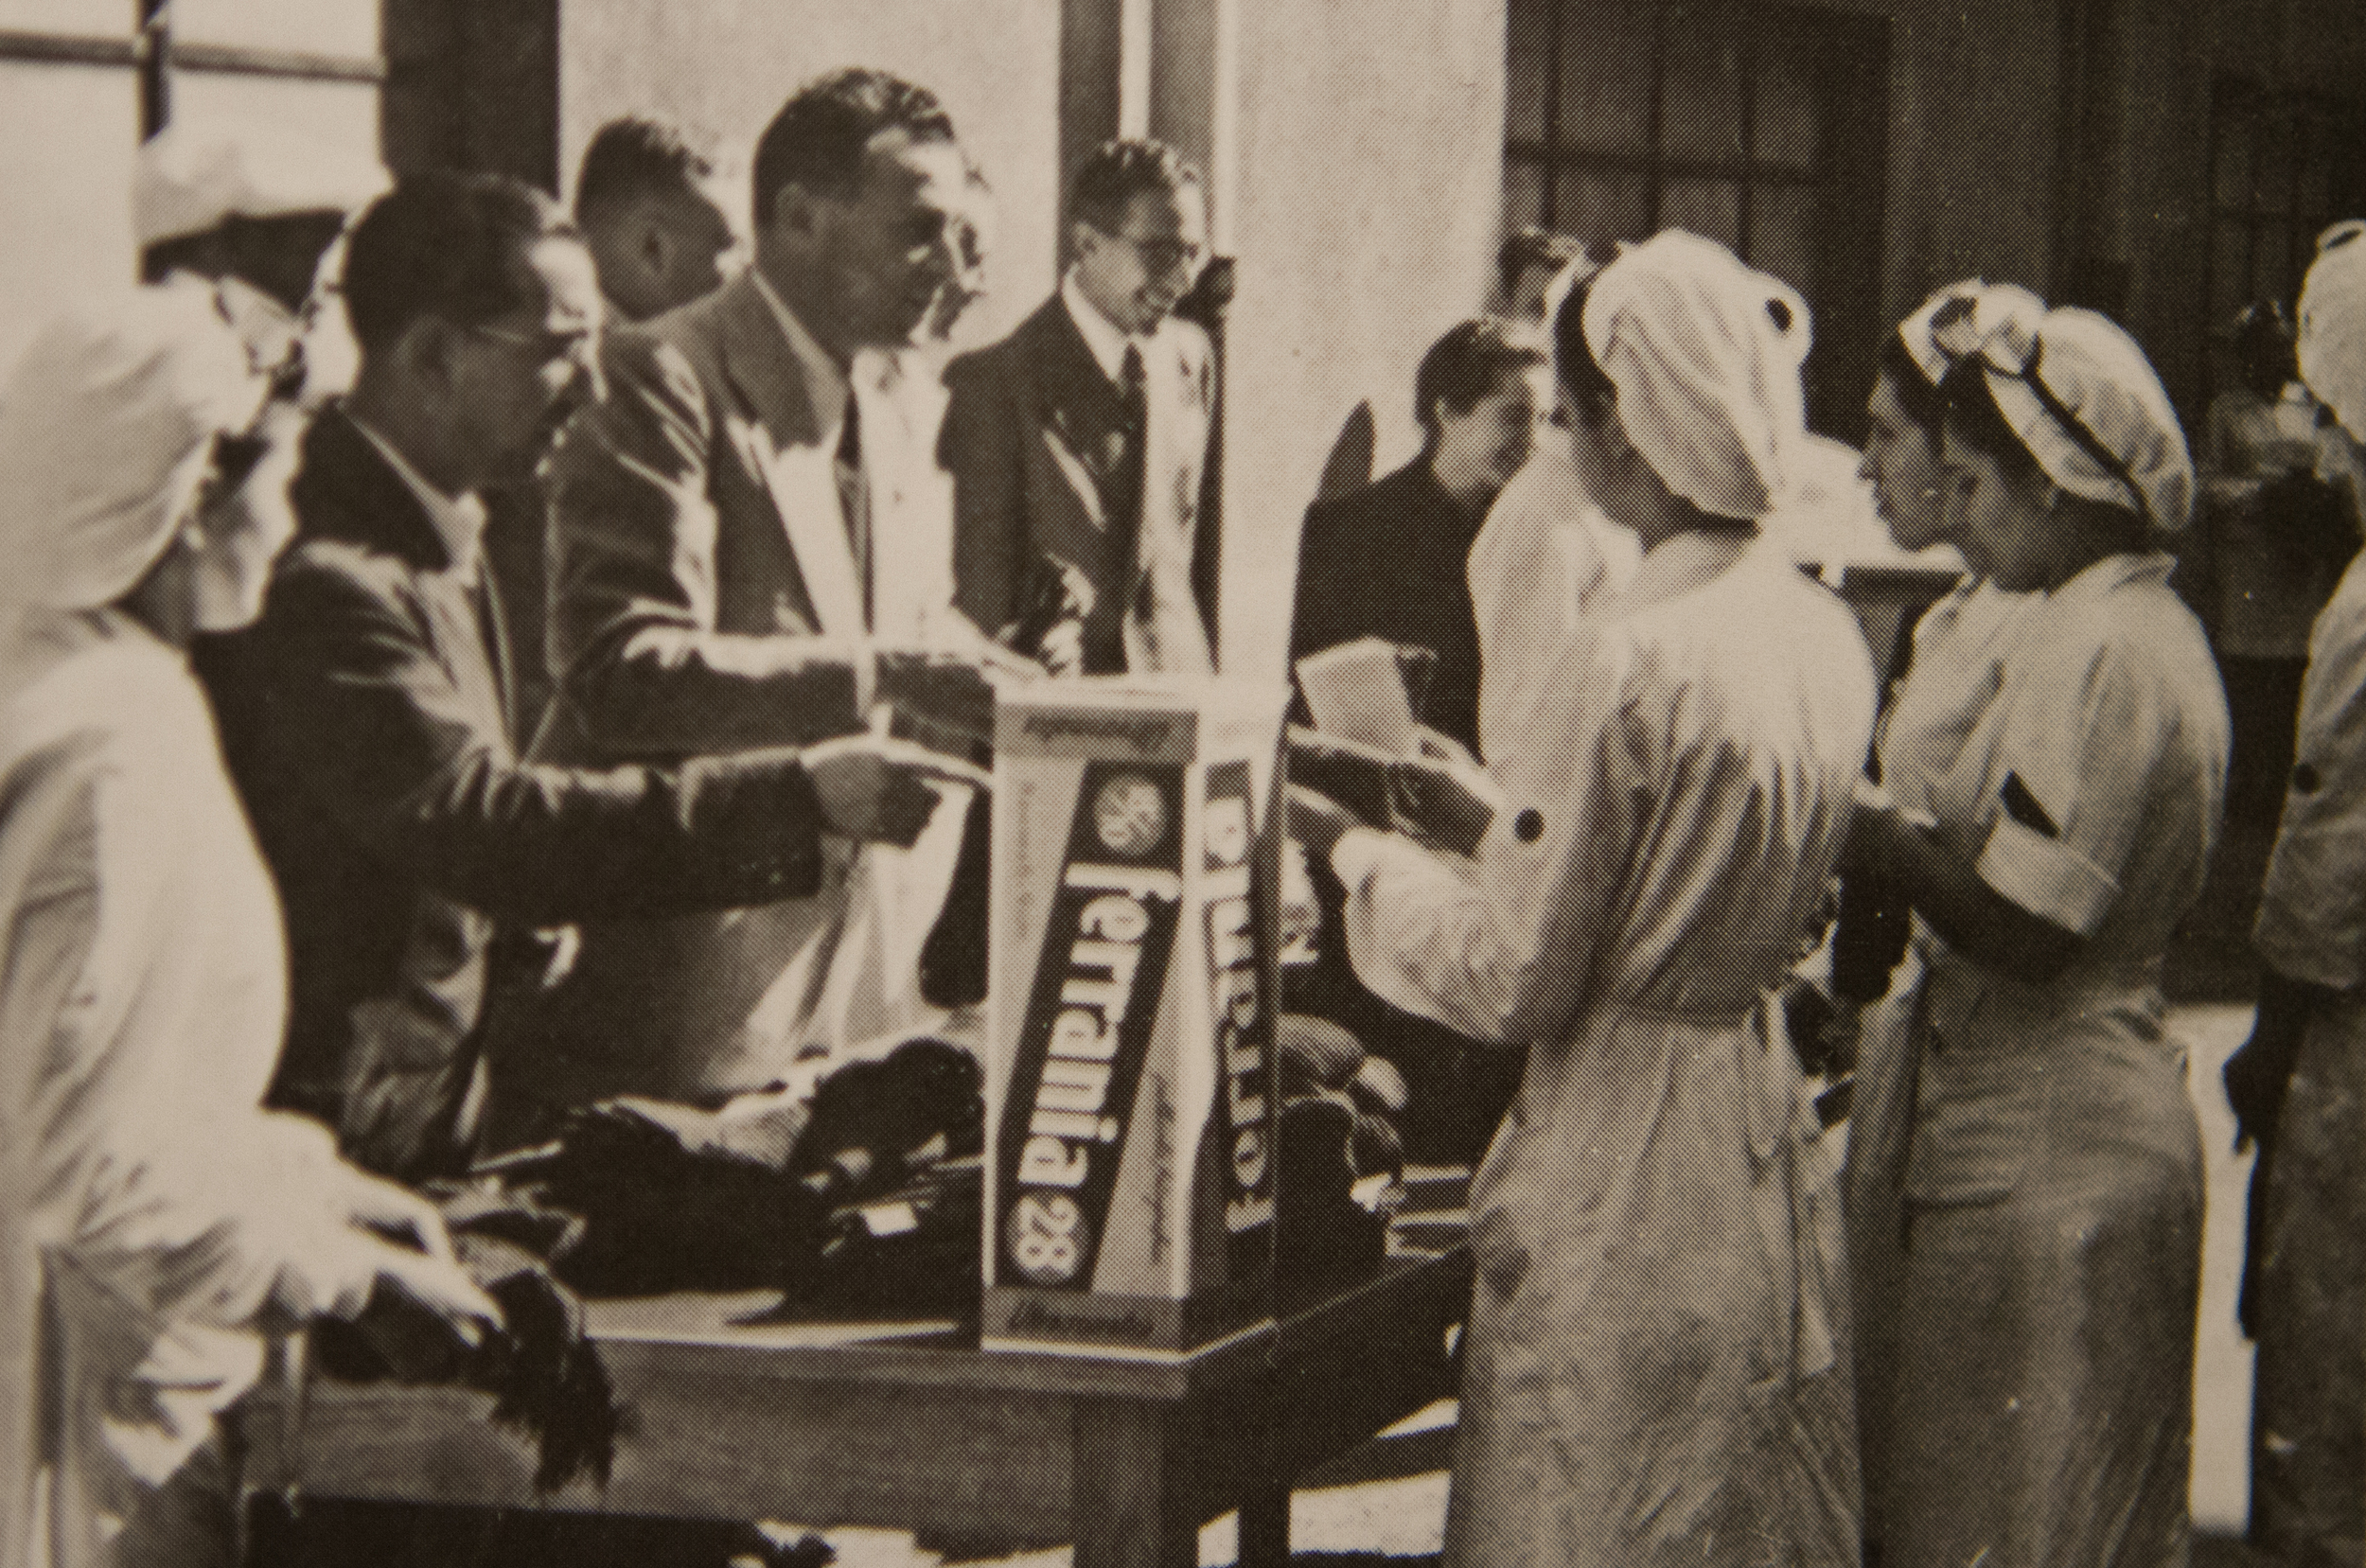 Ferrania employees donate clothes for soldiers in 1940